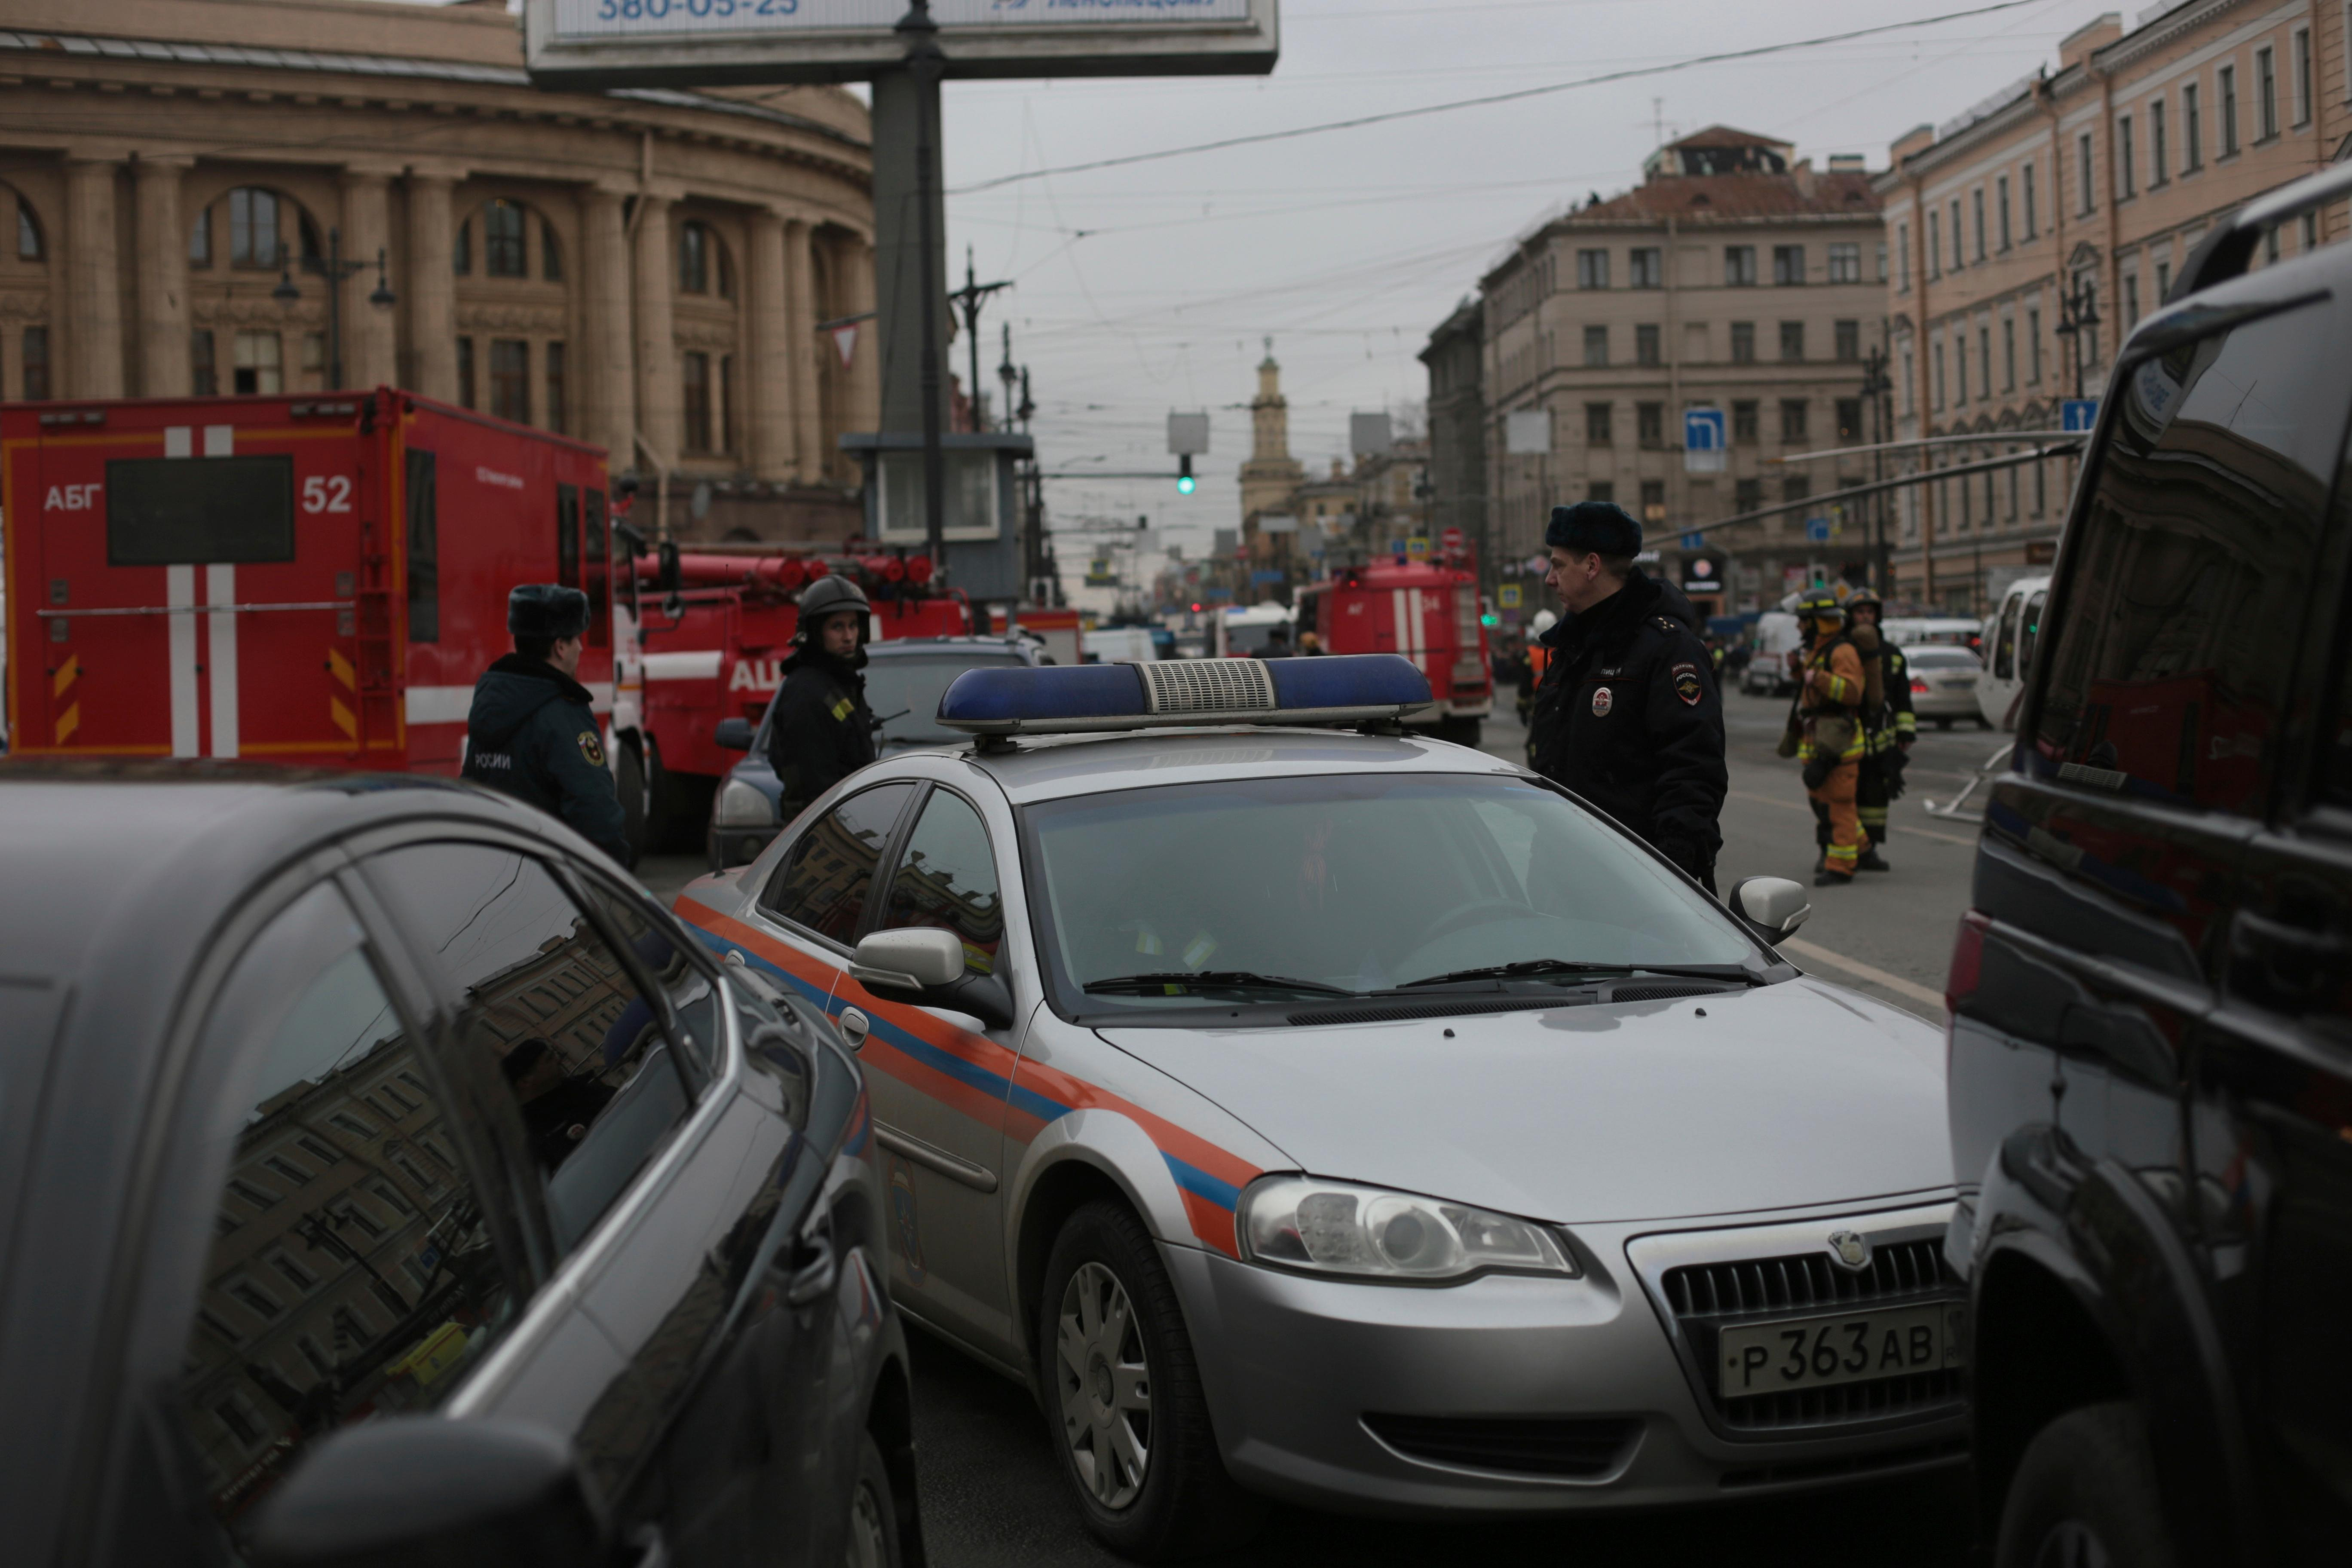 Russian police and emergency personnel block an area at the Tekhnologicheskaya metro station after explosion in St.Petersburg subway in St.Petersburg, Russia, Monday, April 3, 2017. The subway in the Russian city of St. Petersburg is reported an explosion on a subway train. (AP Photo/Yevgeny Kurskov)